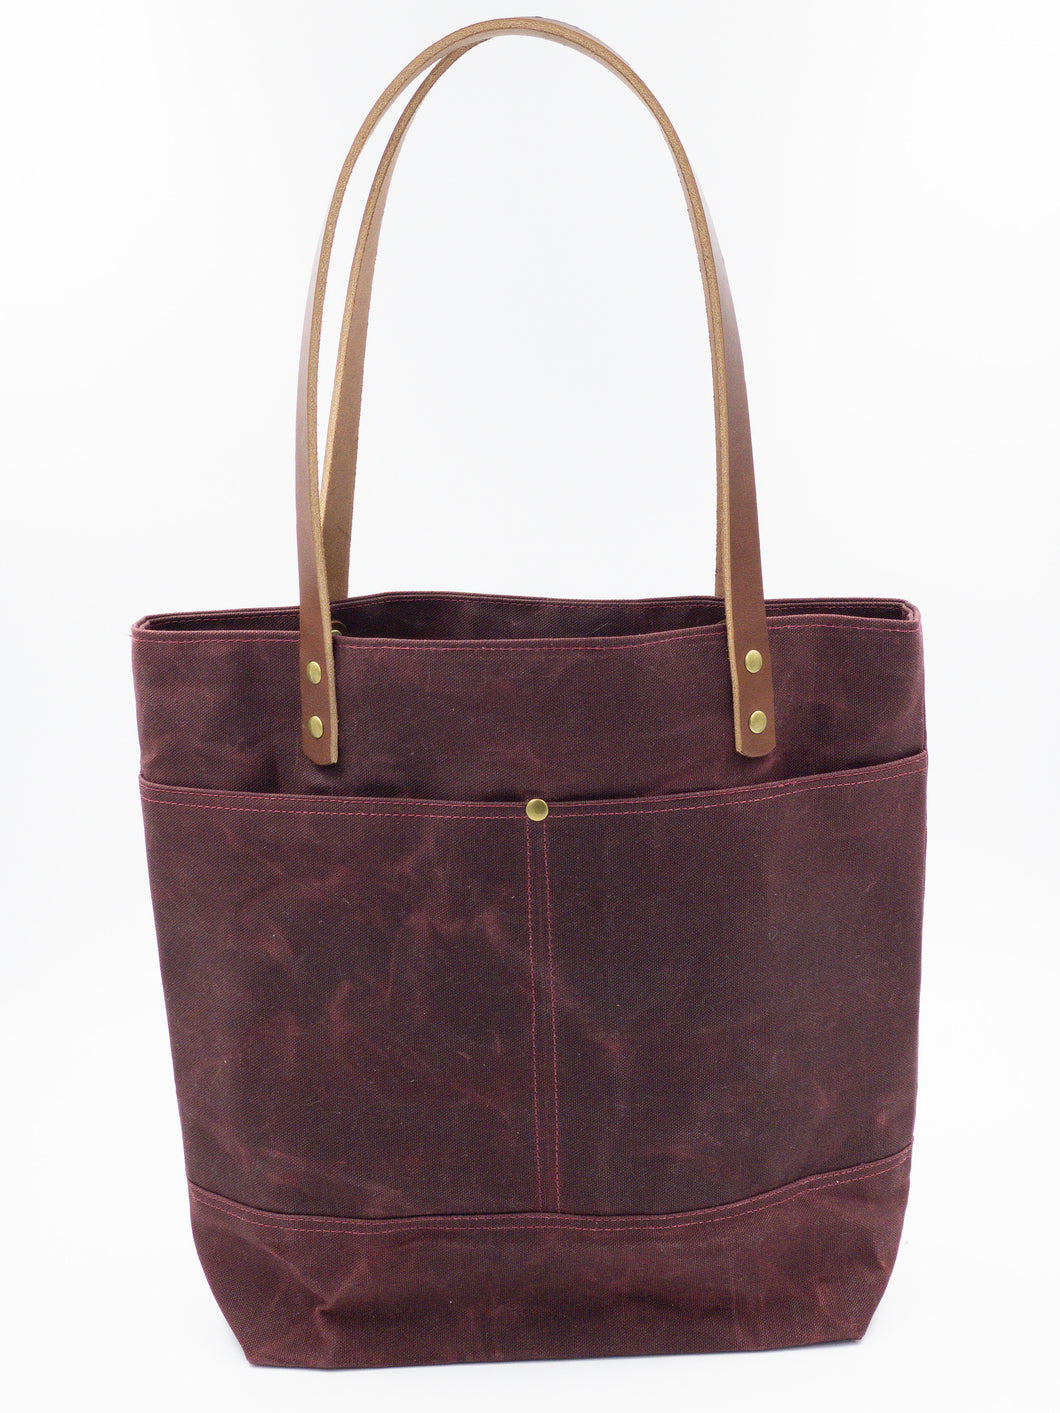 Waxed Canvas Tote - Maroon